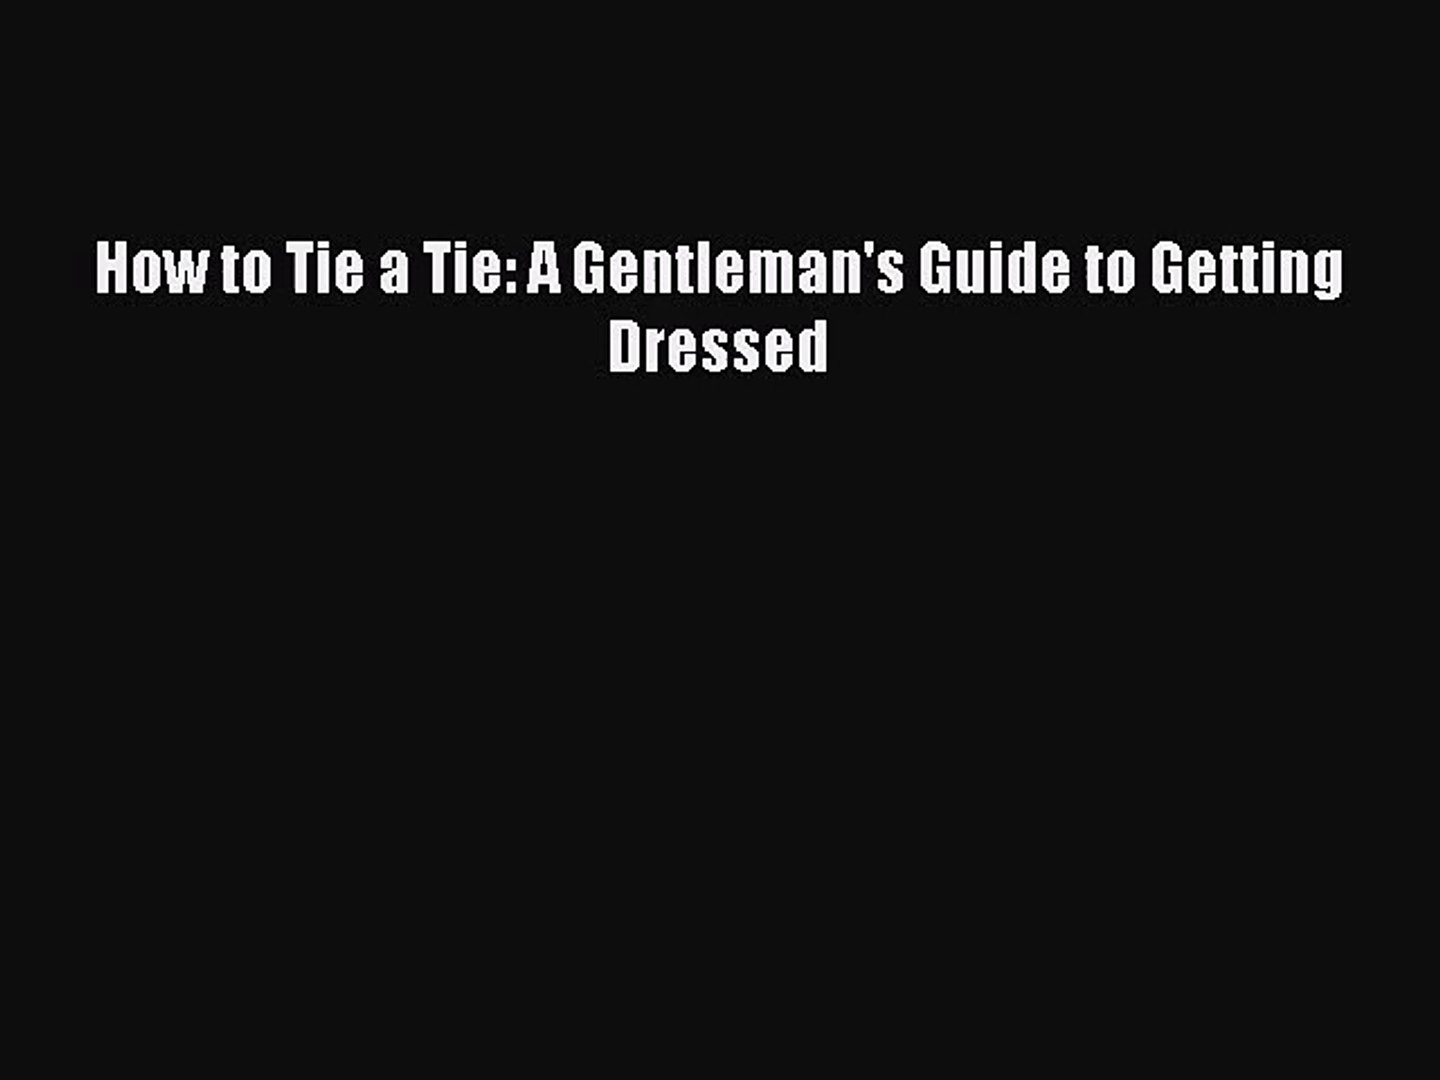 (PDF Download) How to Tie a Tie: A Gentleman's Guide to Getting Dressed PDF